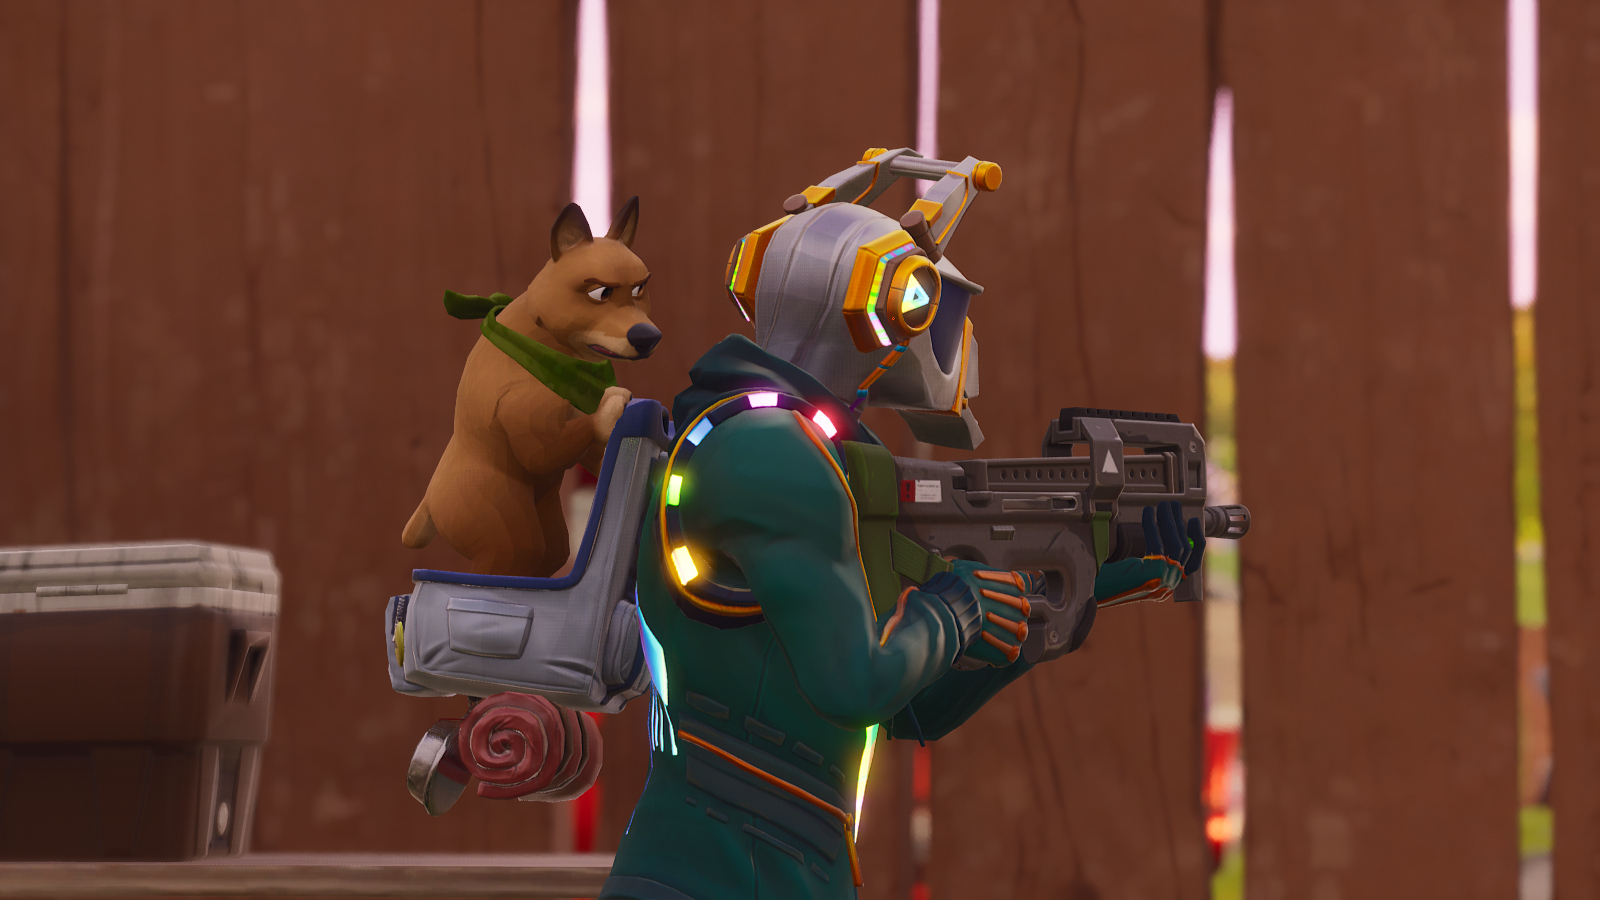 Fortnite - soldier with a dog on his back